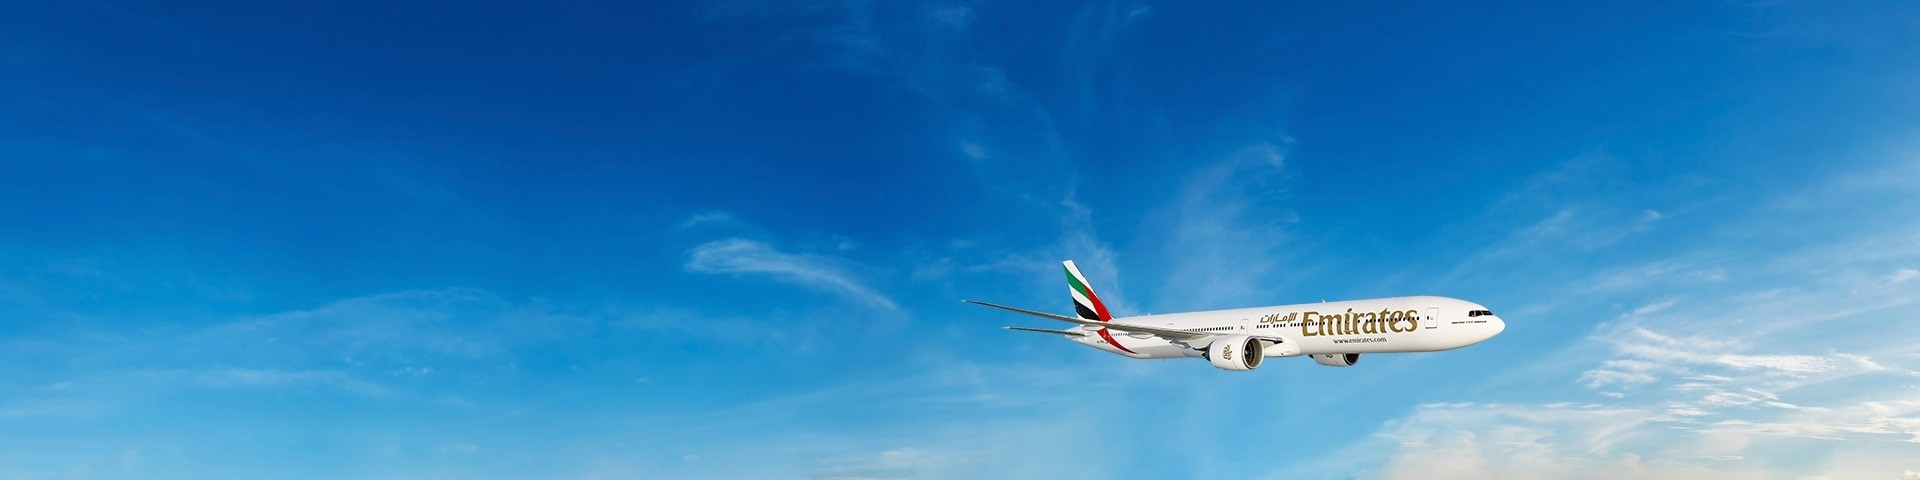 Boeing 777 flying through the blue sky